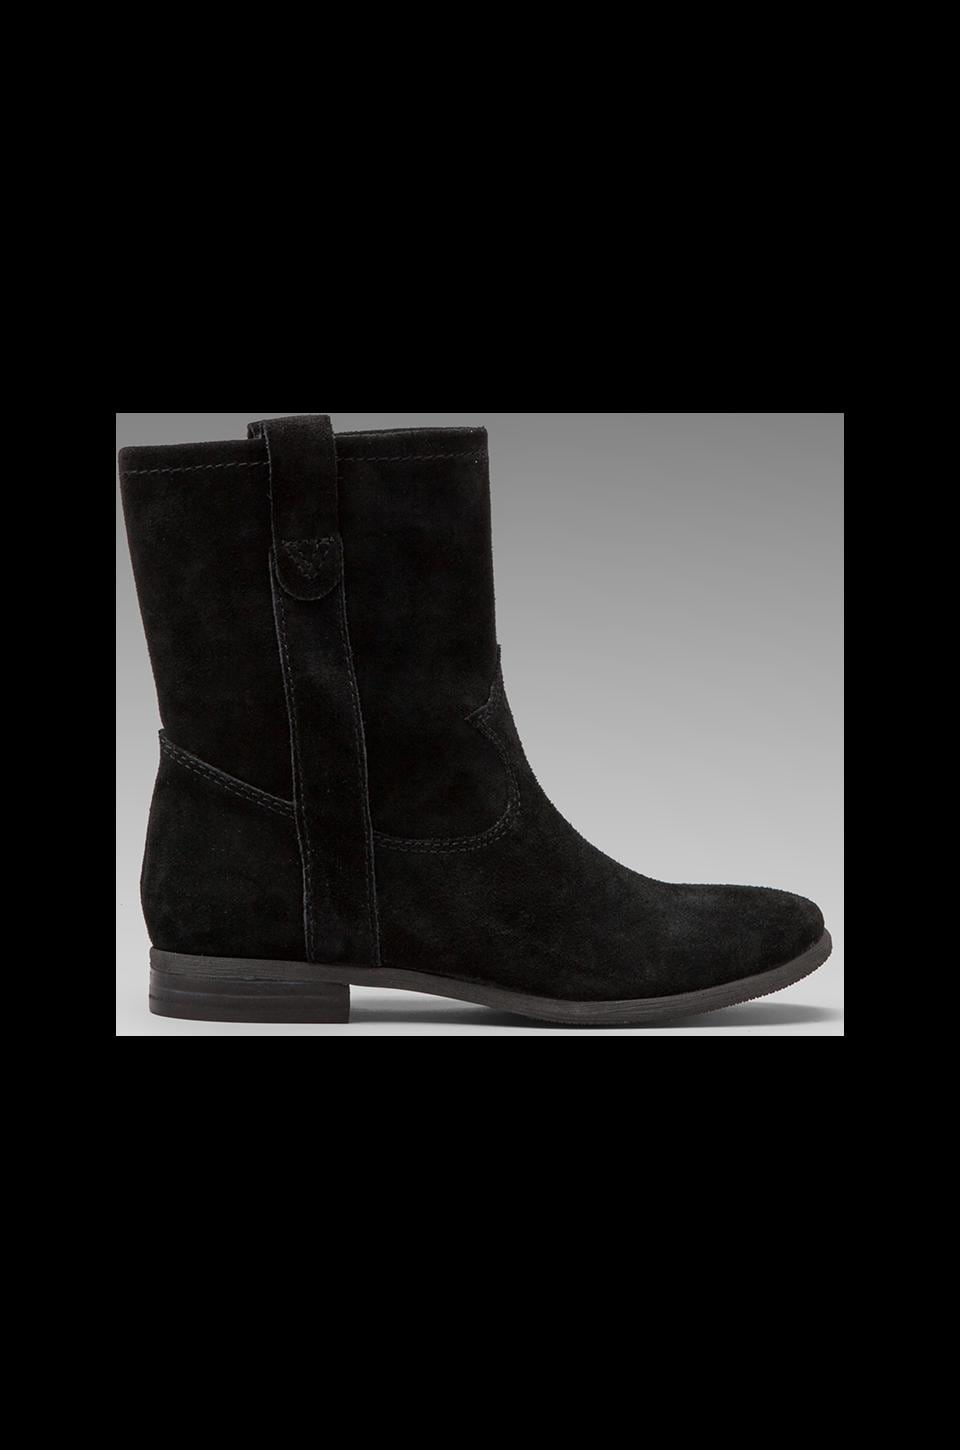 Vince Camuto Fanti Boot in Black